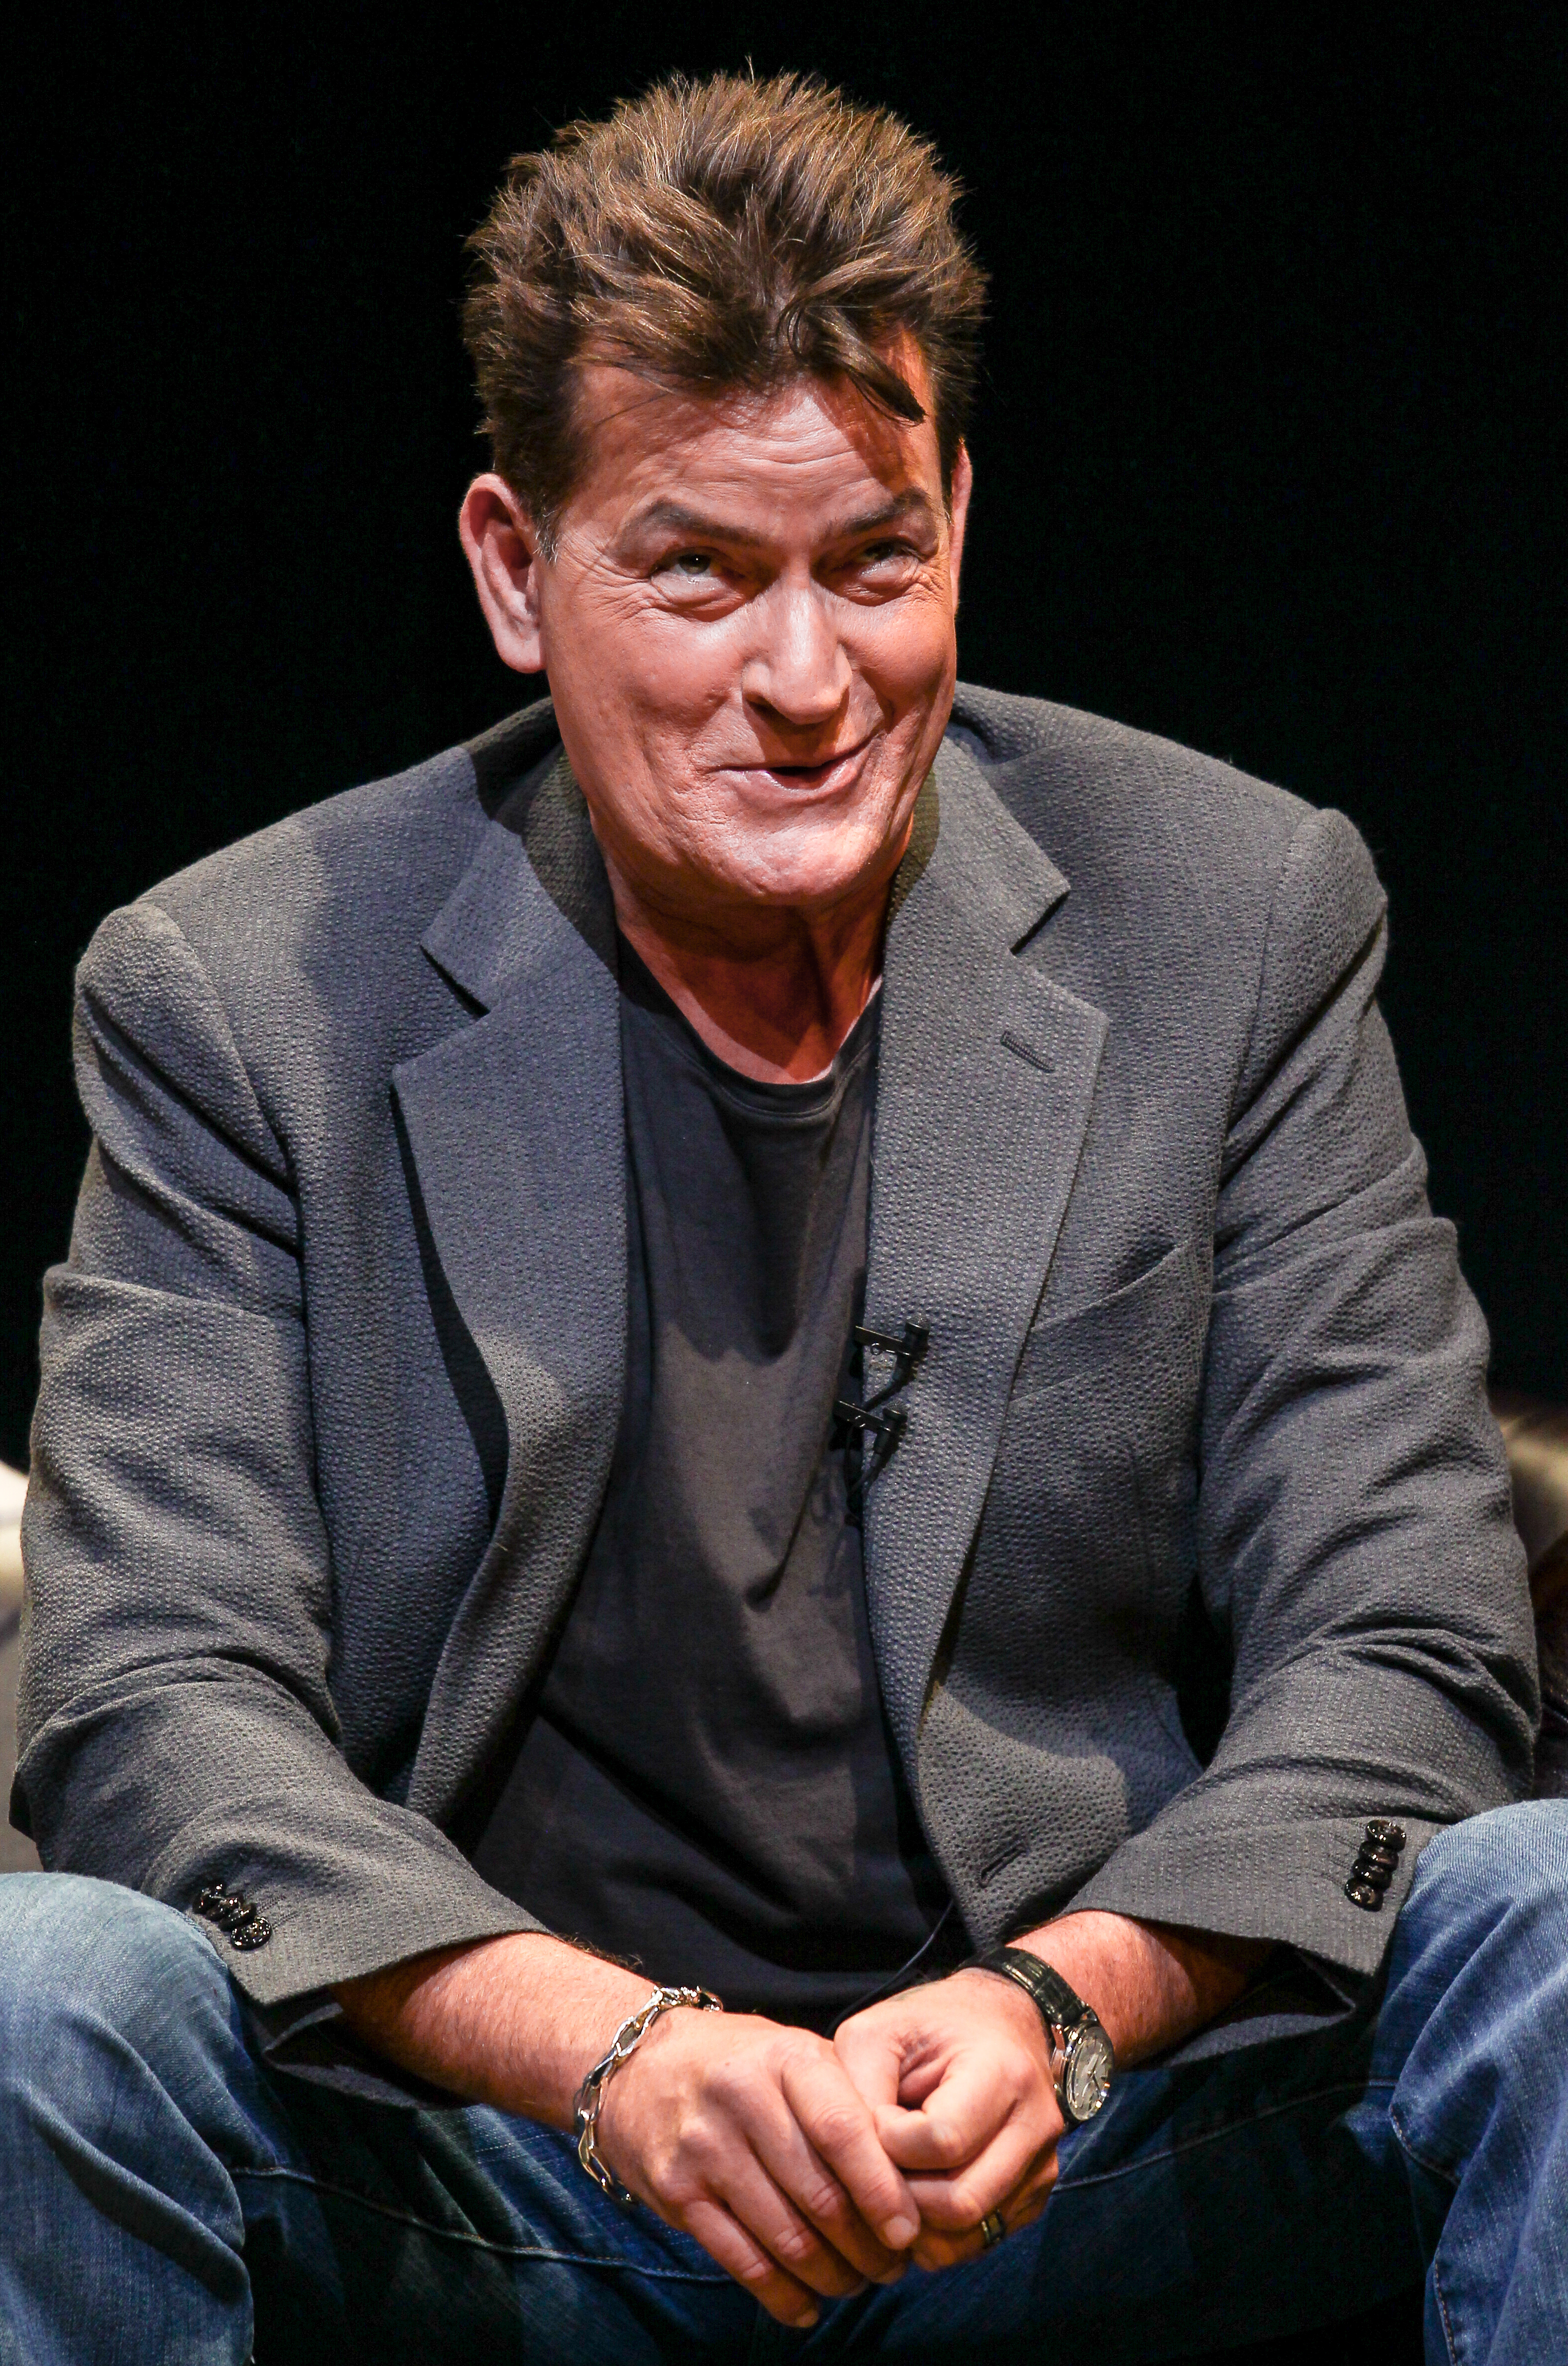 Charlie Sheen shows off his ladies man side